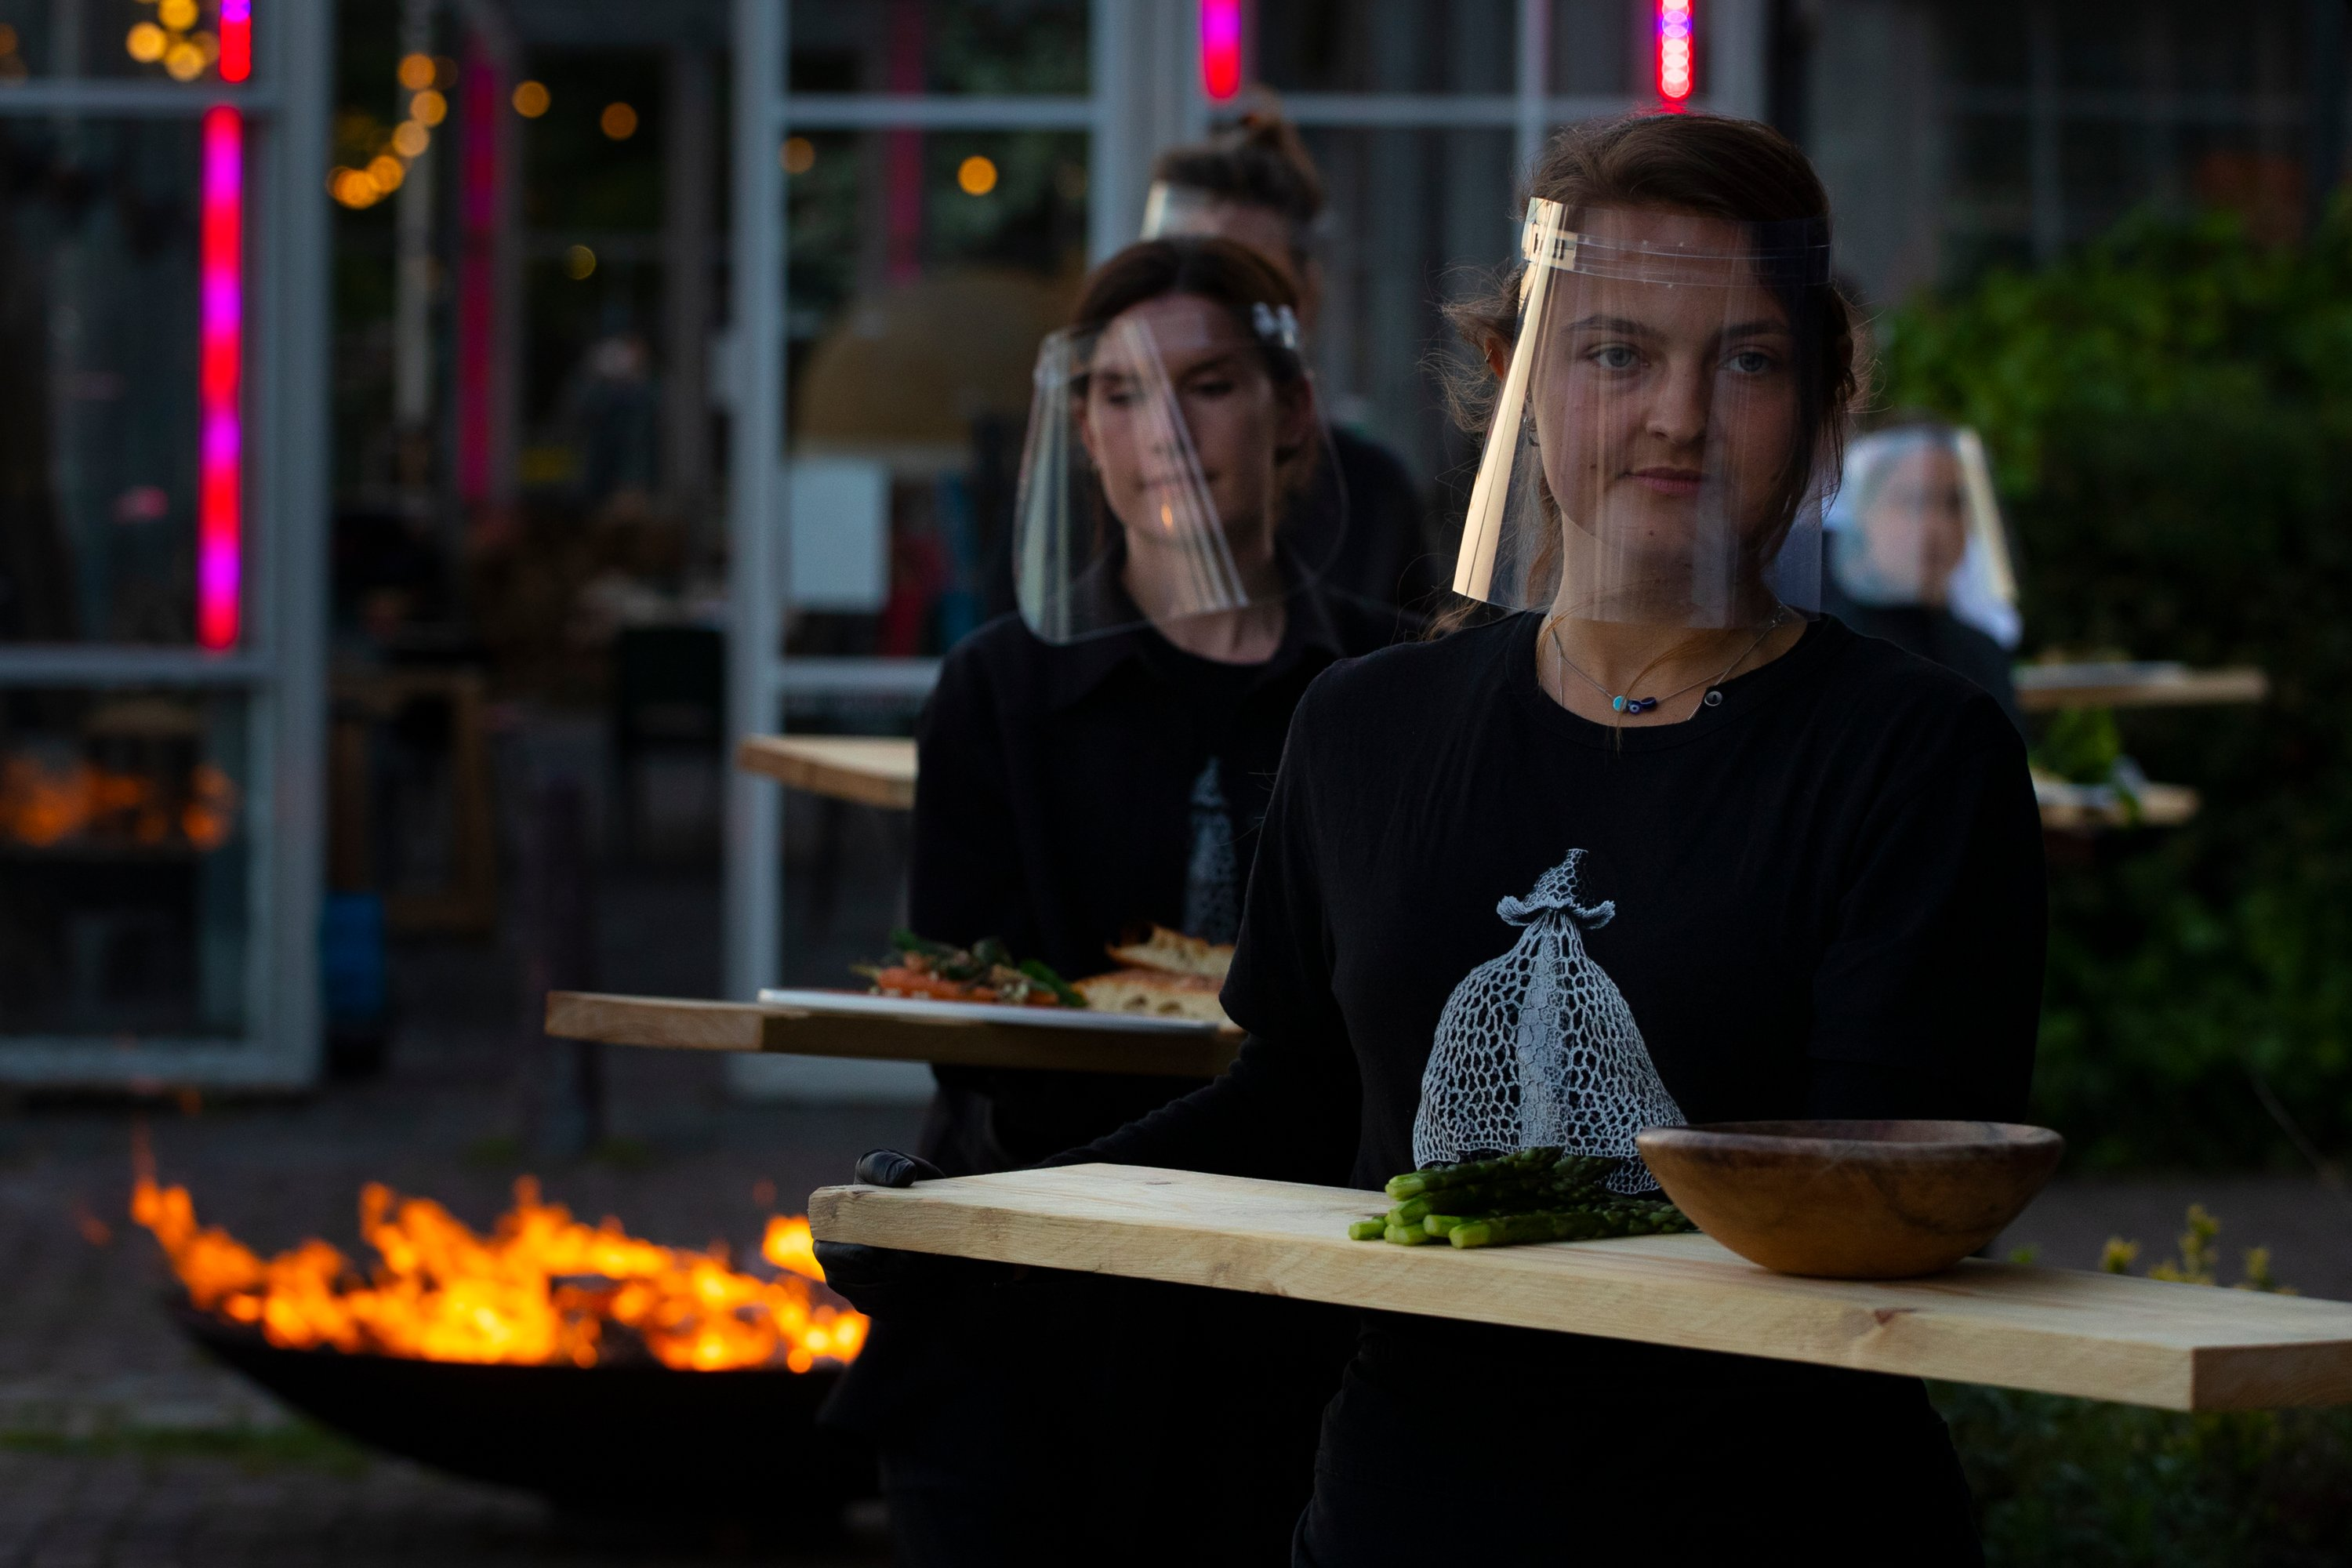 Staff at the Mediamatic restaurant serve food to volunteers seated in small glasshouses during a try-out of a setup which respects social distancing abiding by government directives to combat the spread of the COVID-19 coronavirus in Amsterdam, Netherlands, Tuesday, May 5, 2020. (AP Photo)